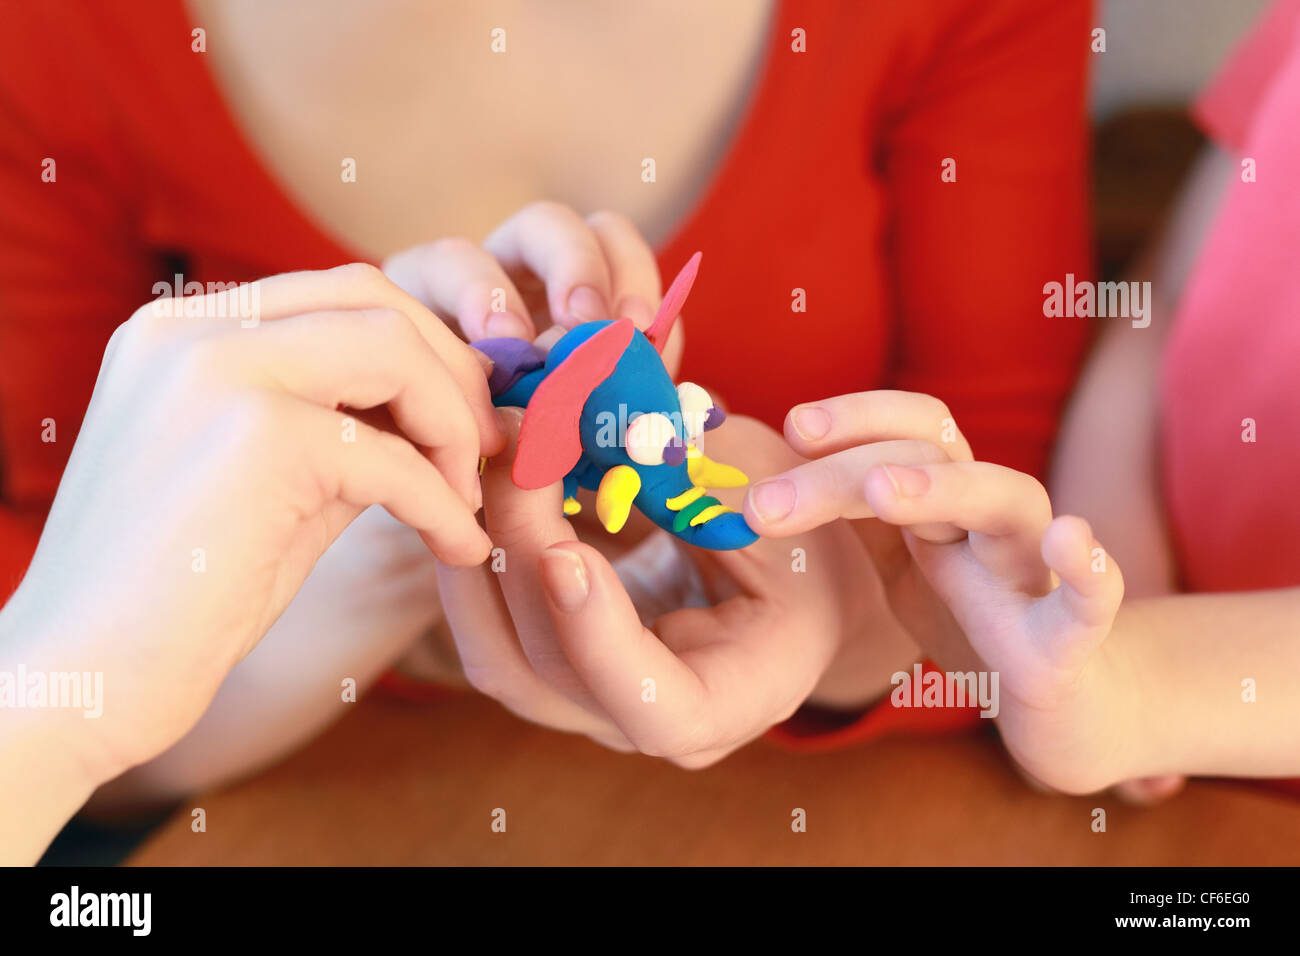 Modeling of home-made elephant from plasticine - Stock Image